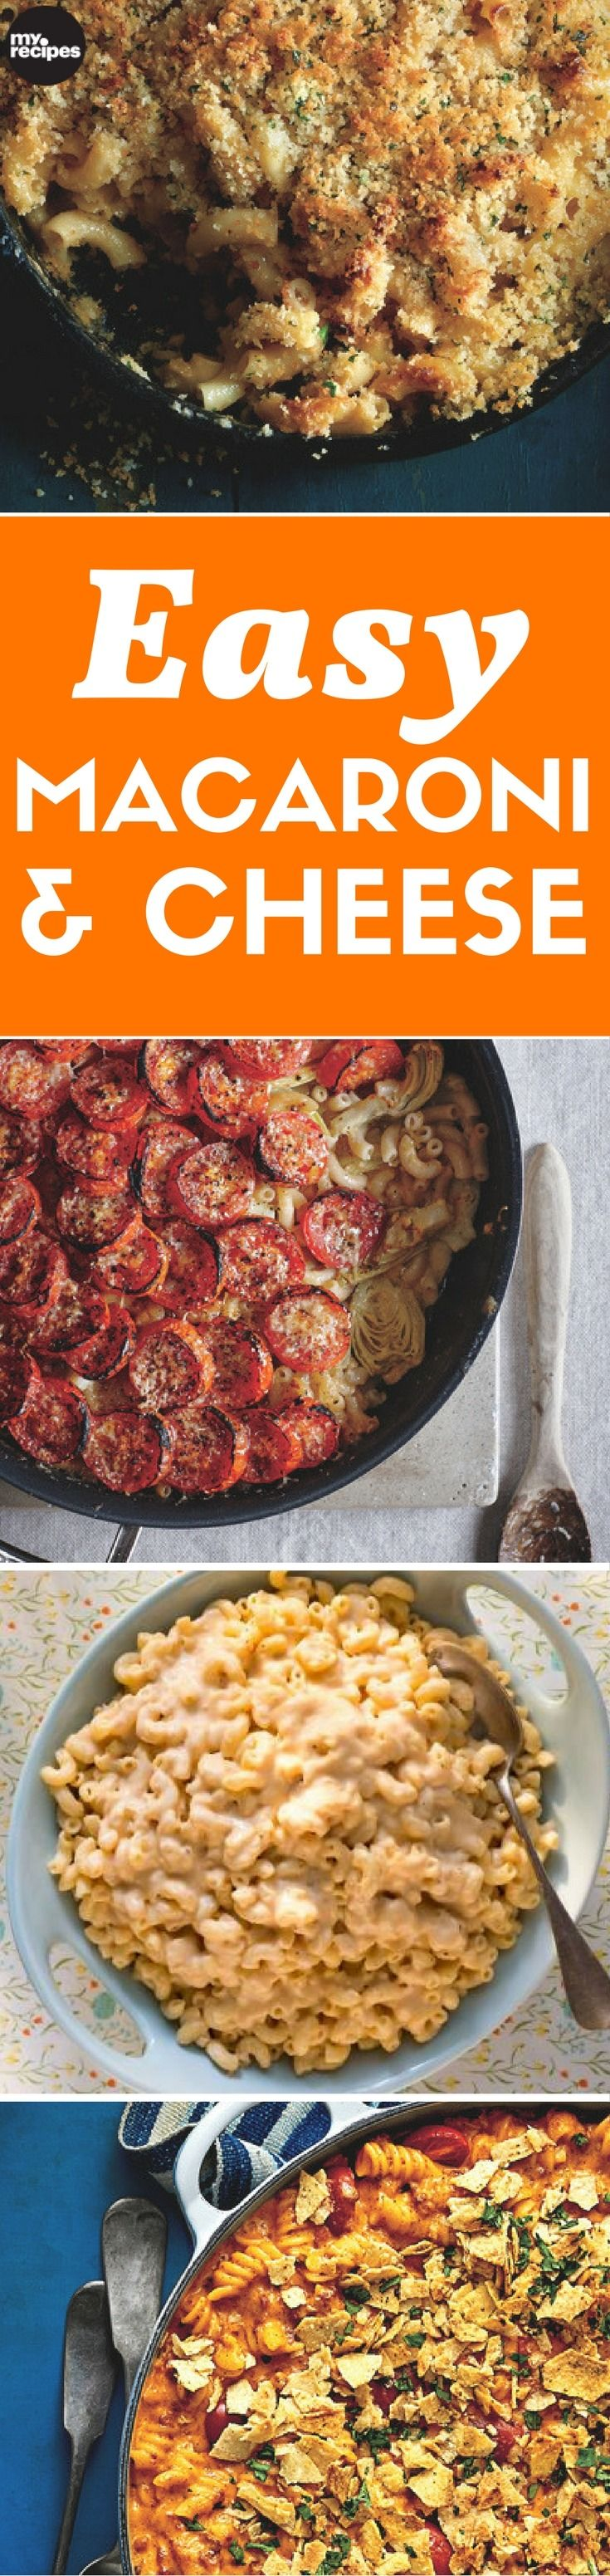 86 best comfort food images on pinterest appetizer recipes easy macaroni and cheese meals soul food forumfinder Images